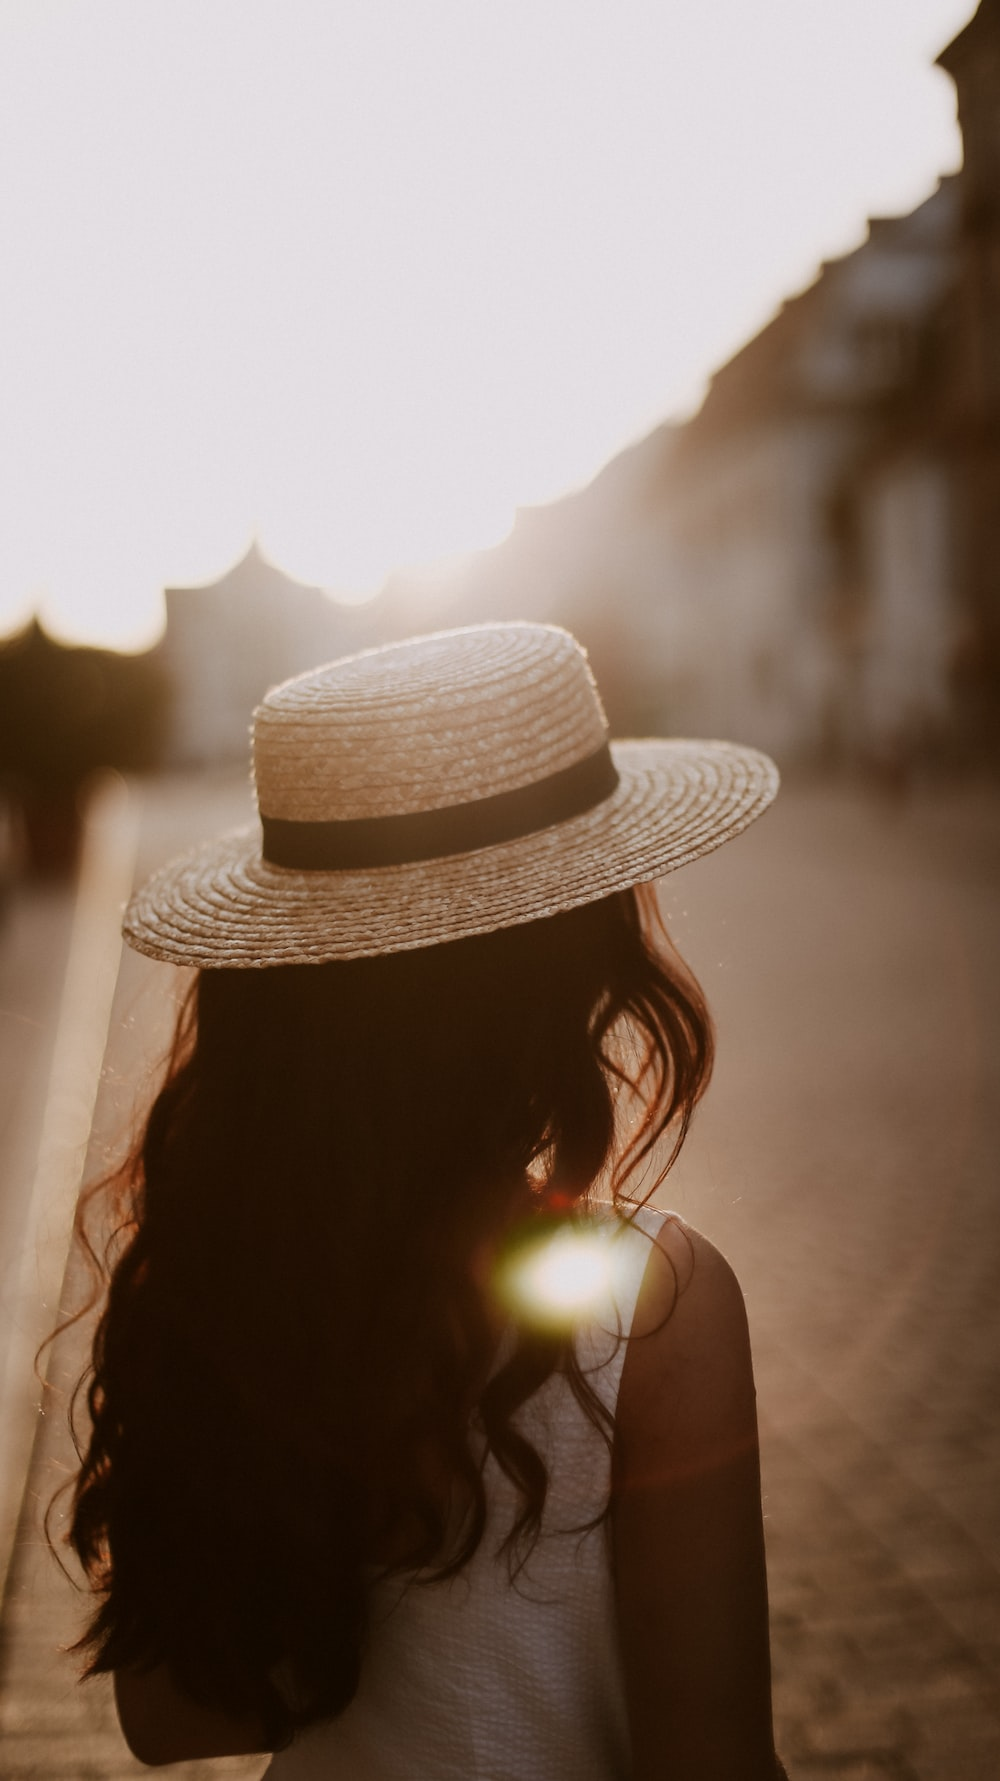 woman wearing brown sun hat during daytime